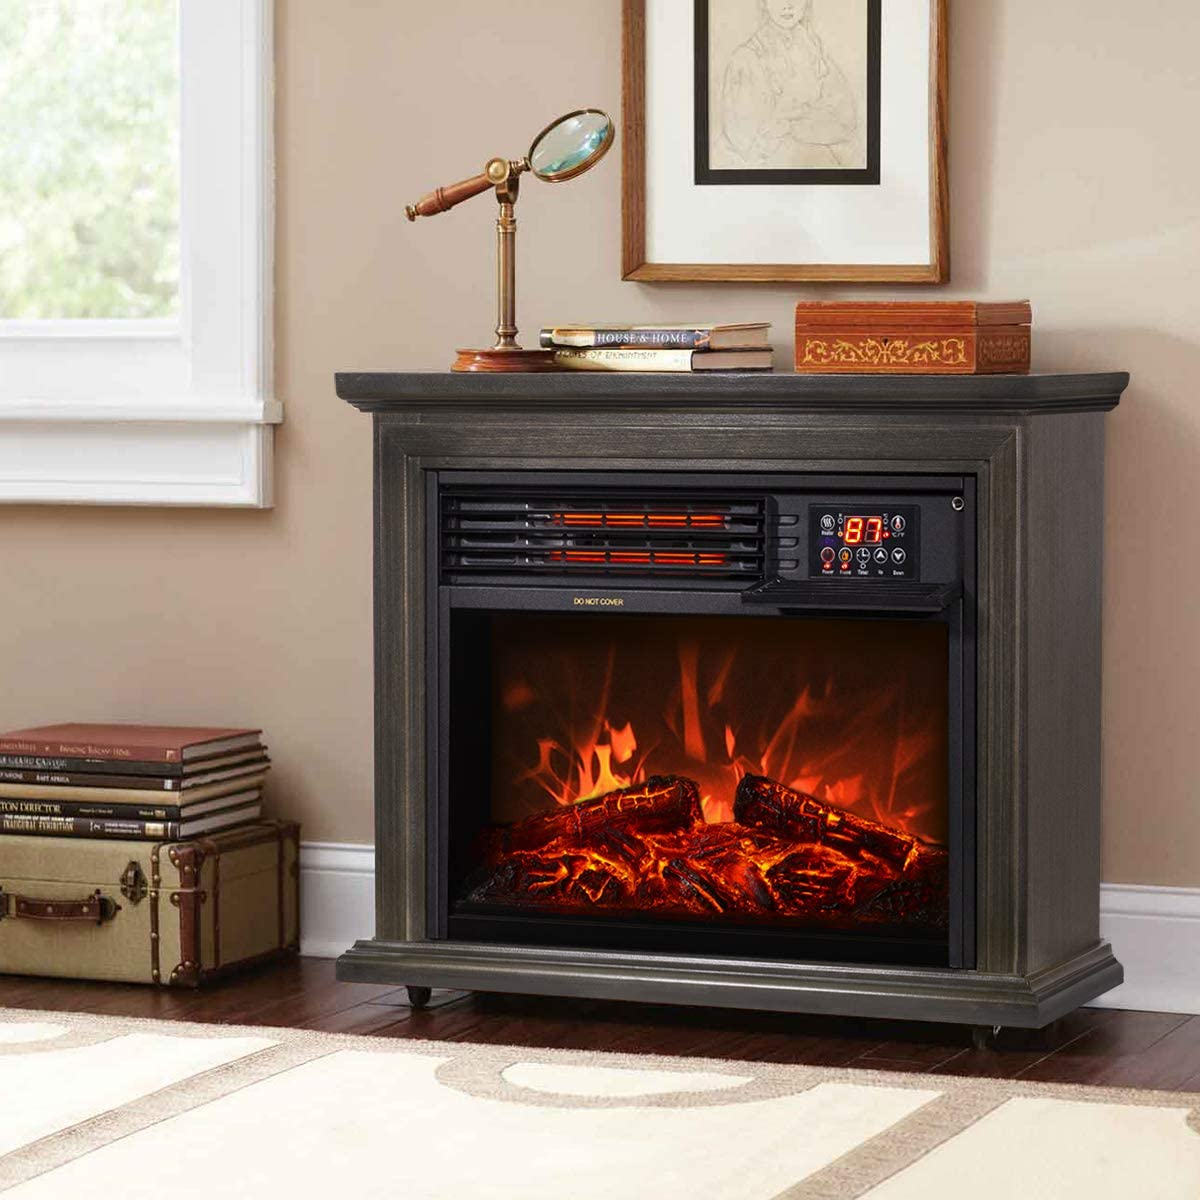 XtremepowerUS 1500W Infrared Quartz Heater Large discharge sale Fireplace Electric Milwaukee Mall Fr